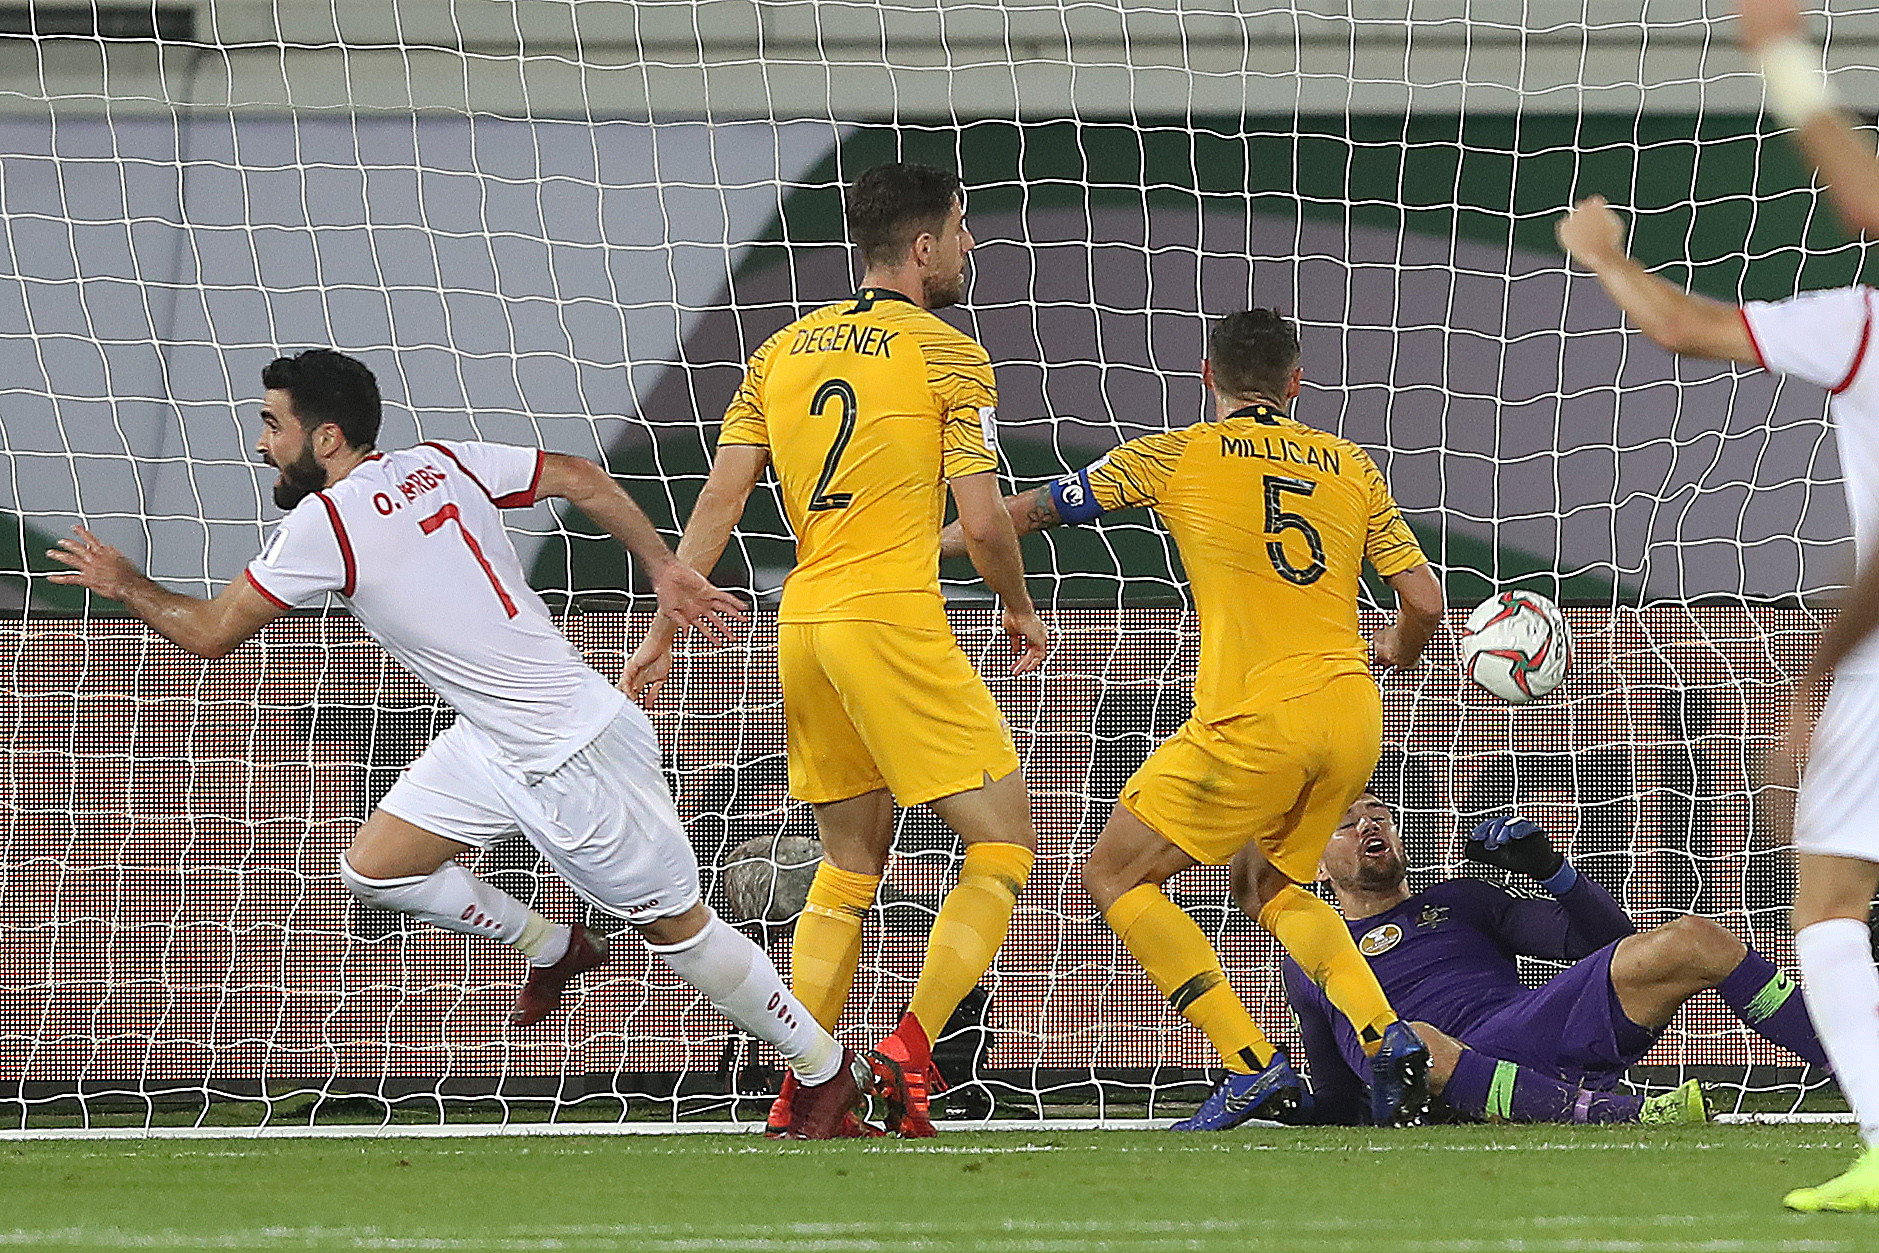 Syria twice equalised before they were subjected to last-minute heartbreak ©Getty Images